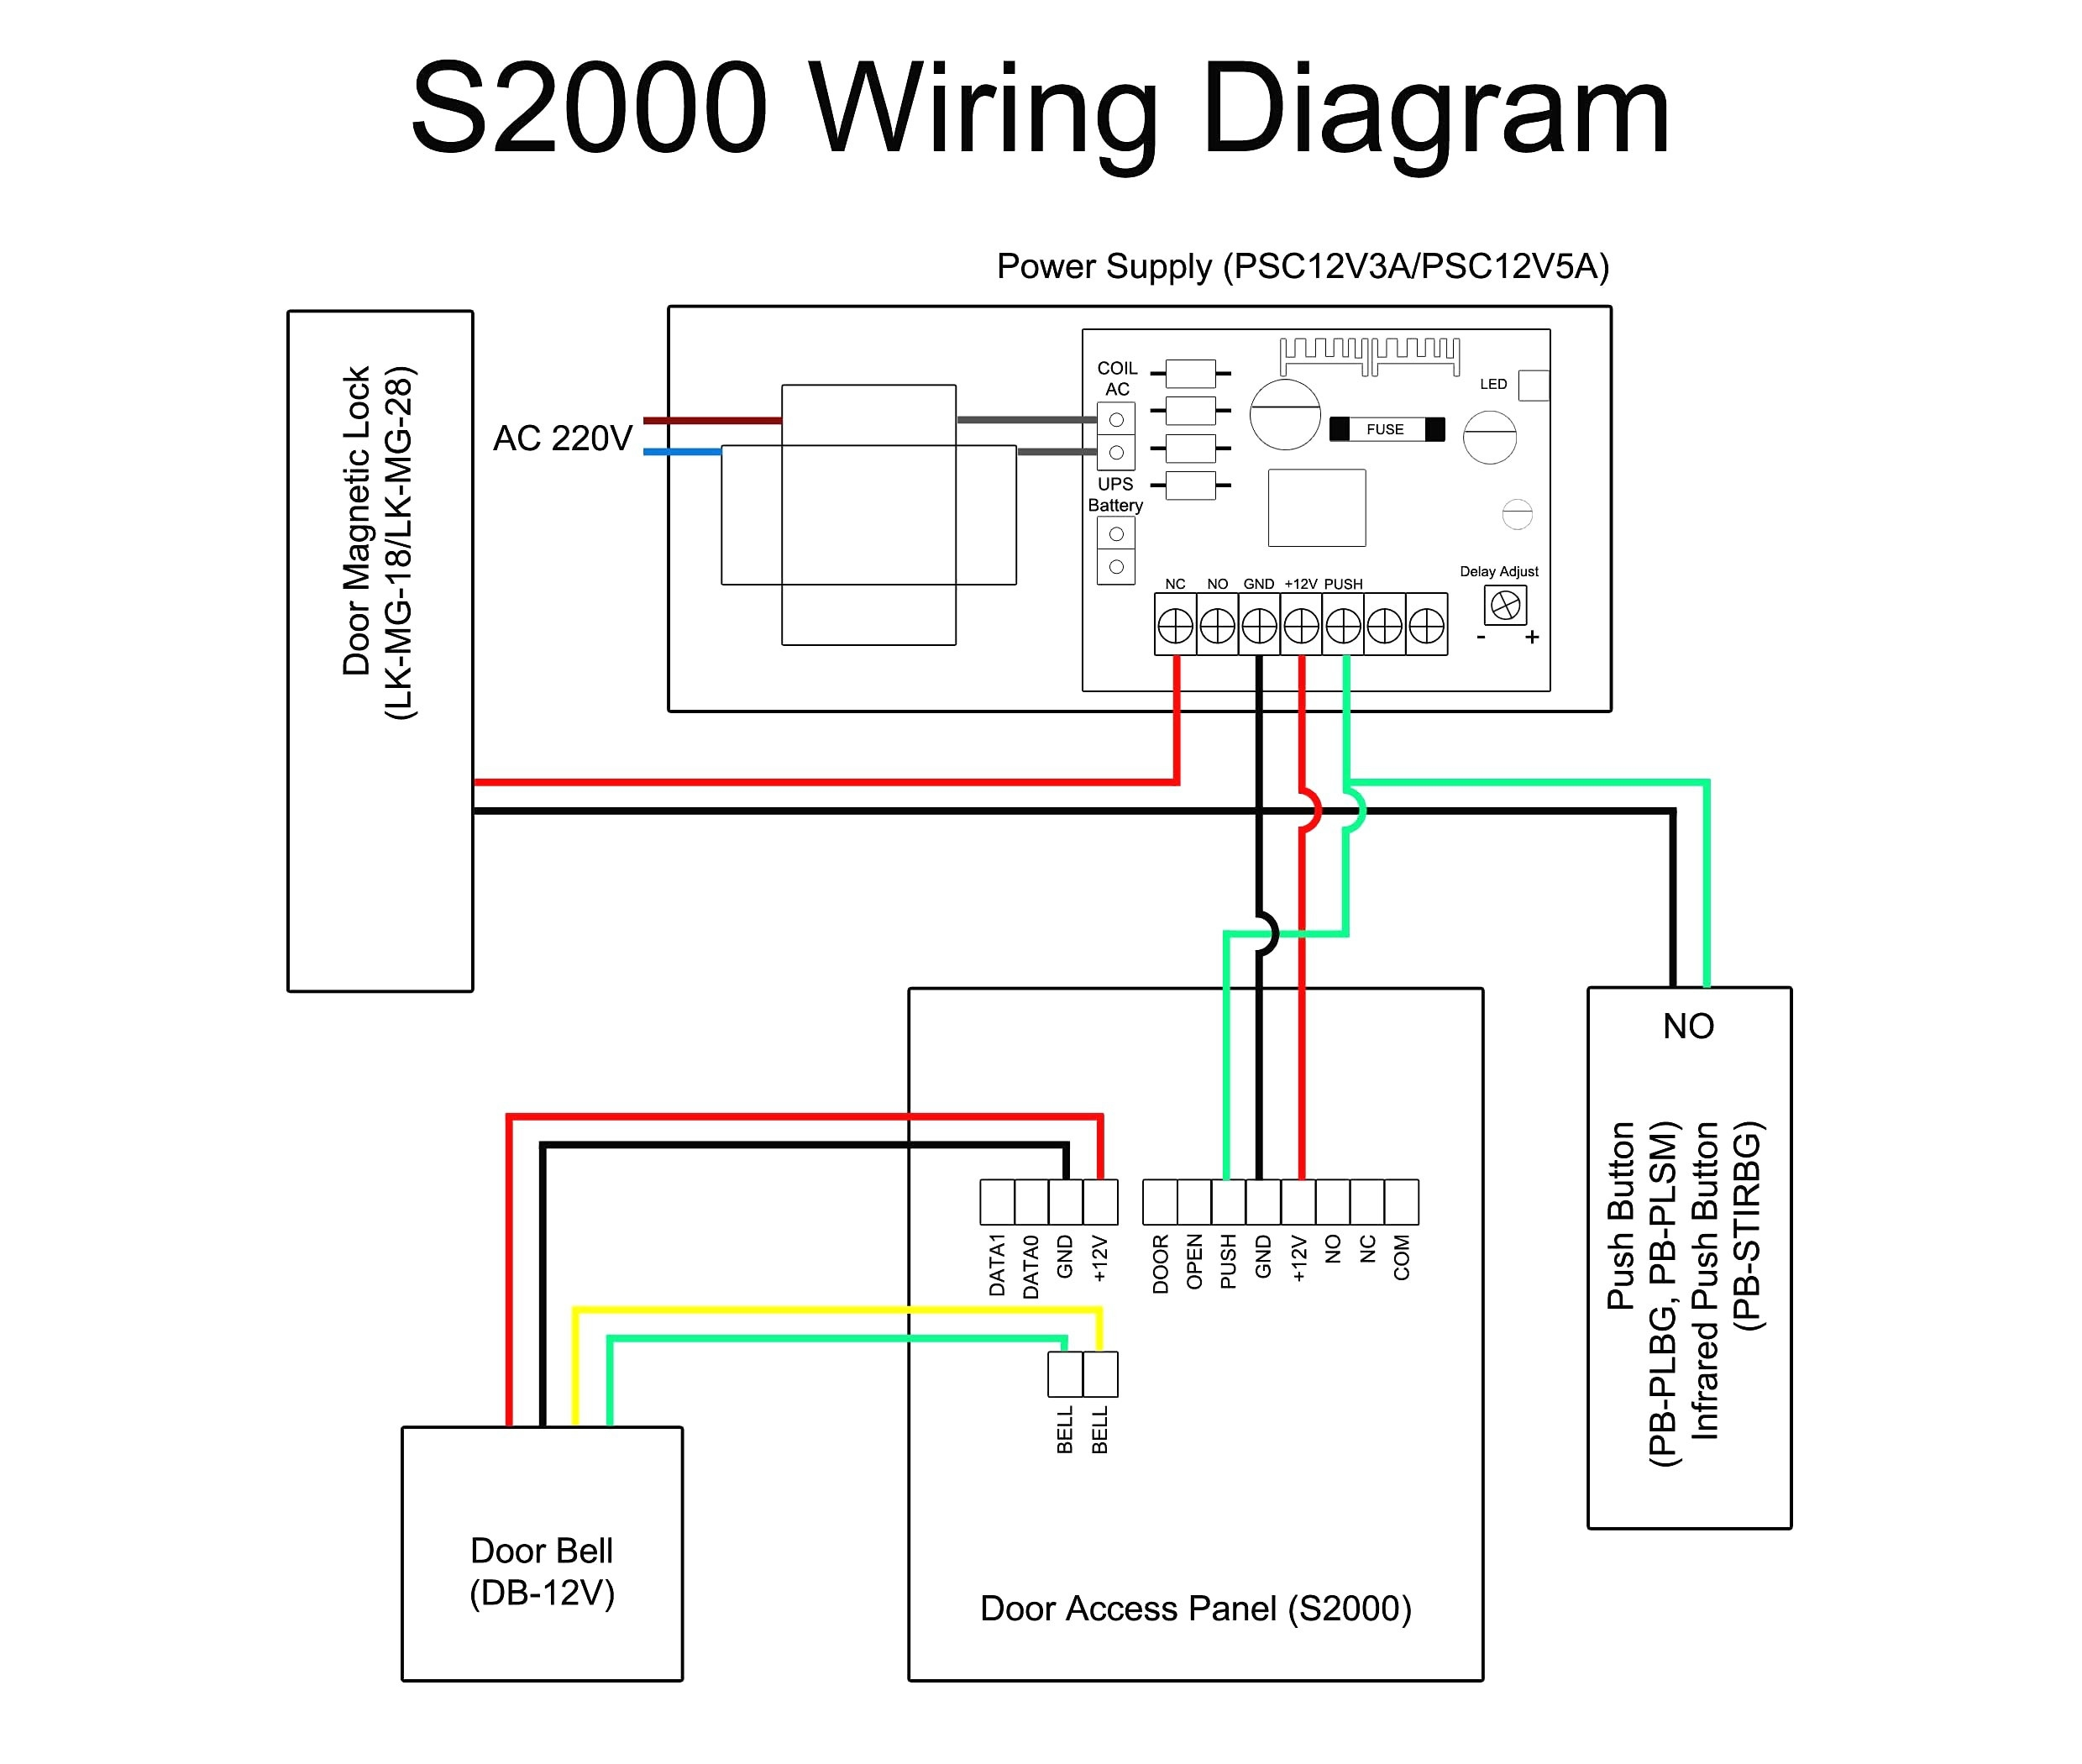 Cics Wiring Diagram - Technical Diagrams on